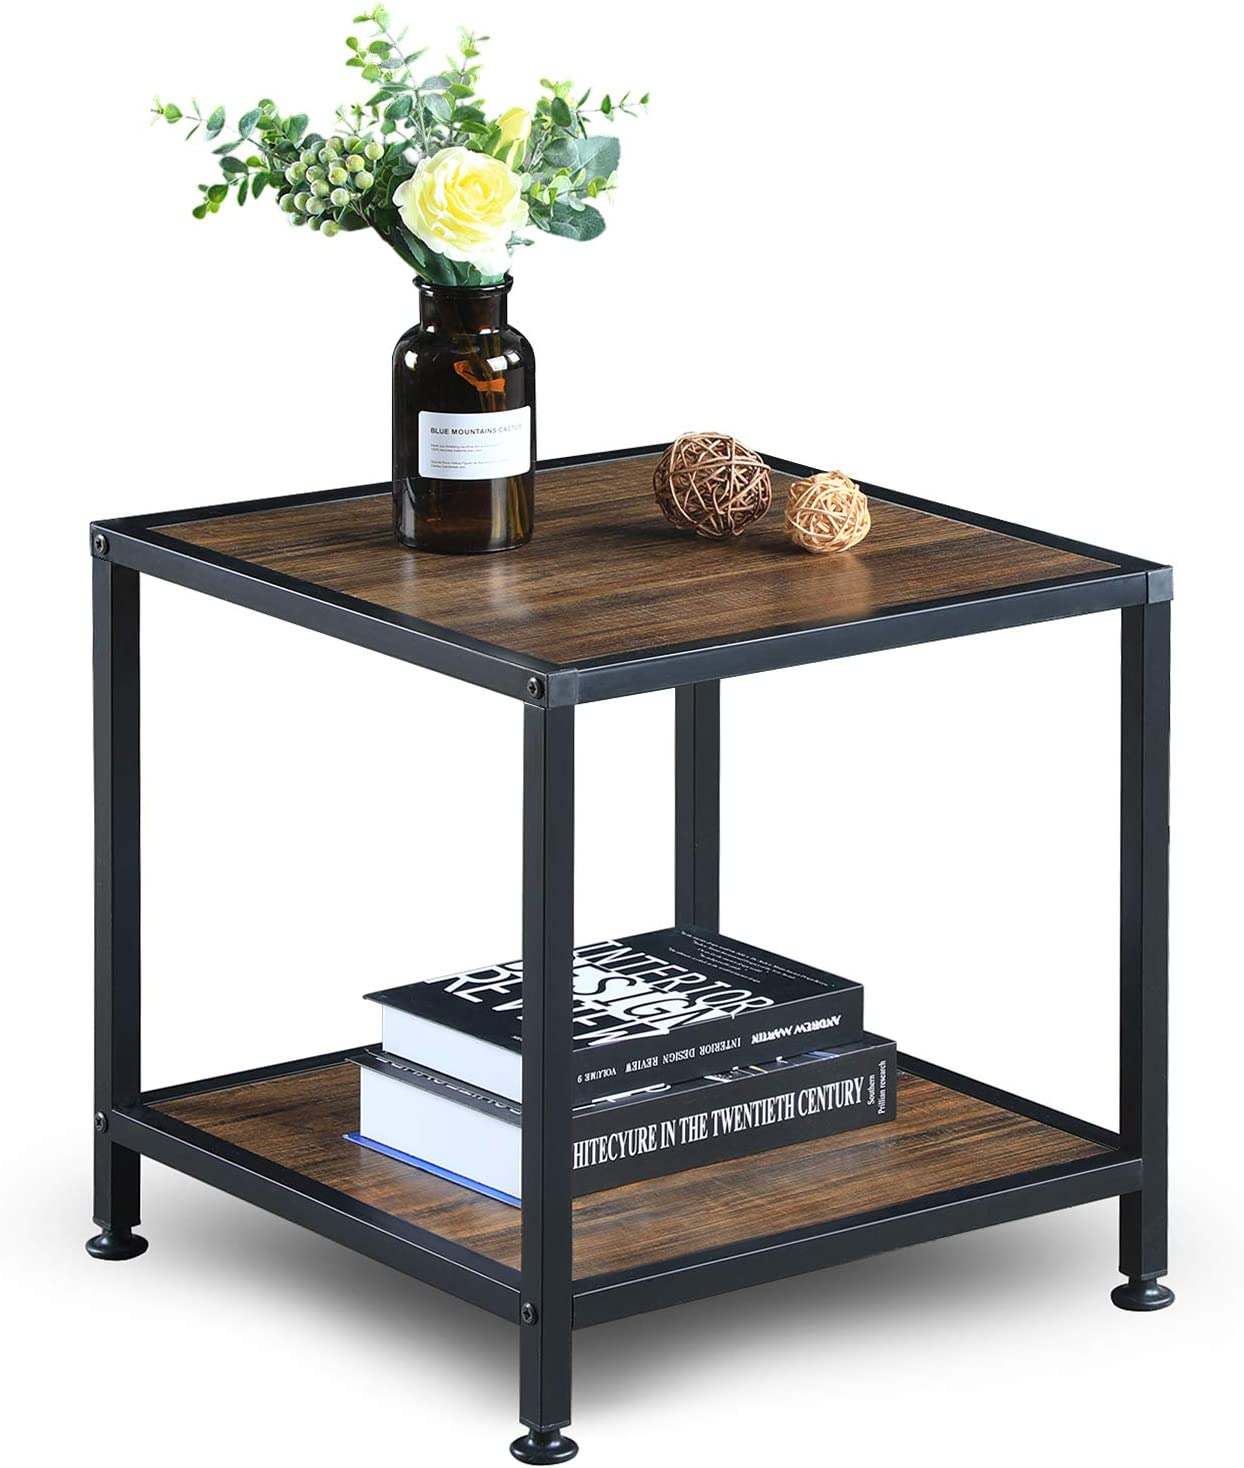 GreenForest End Table with Storage Shelf 2 Tier Wood and Metal Side Table for Living Room Bedroom, Easy Assembly, Walnut